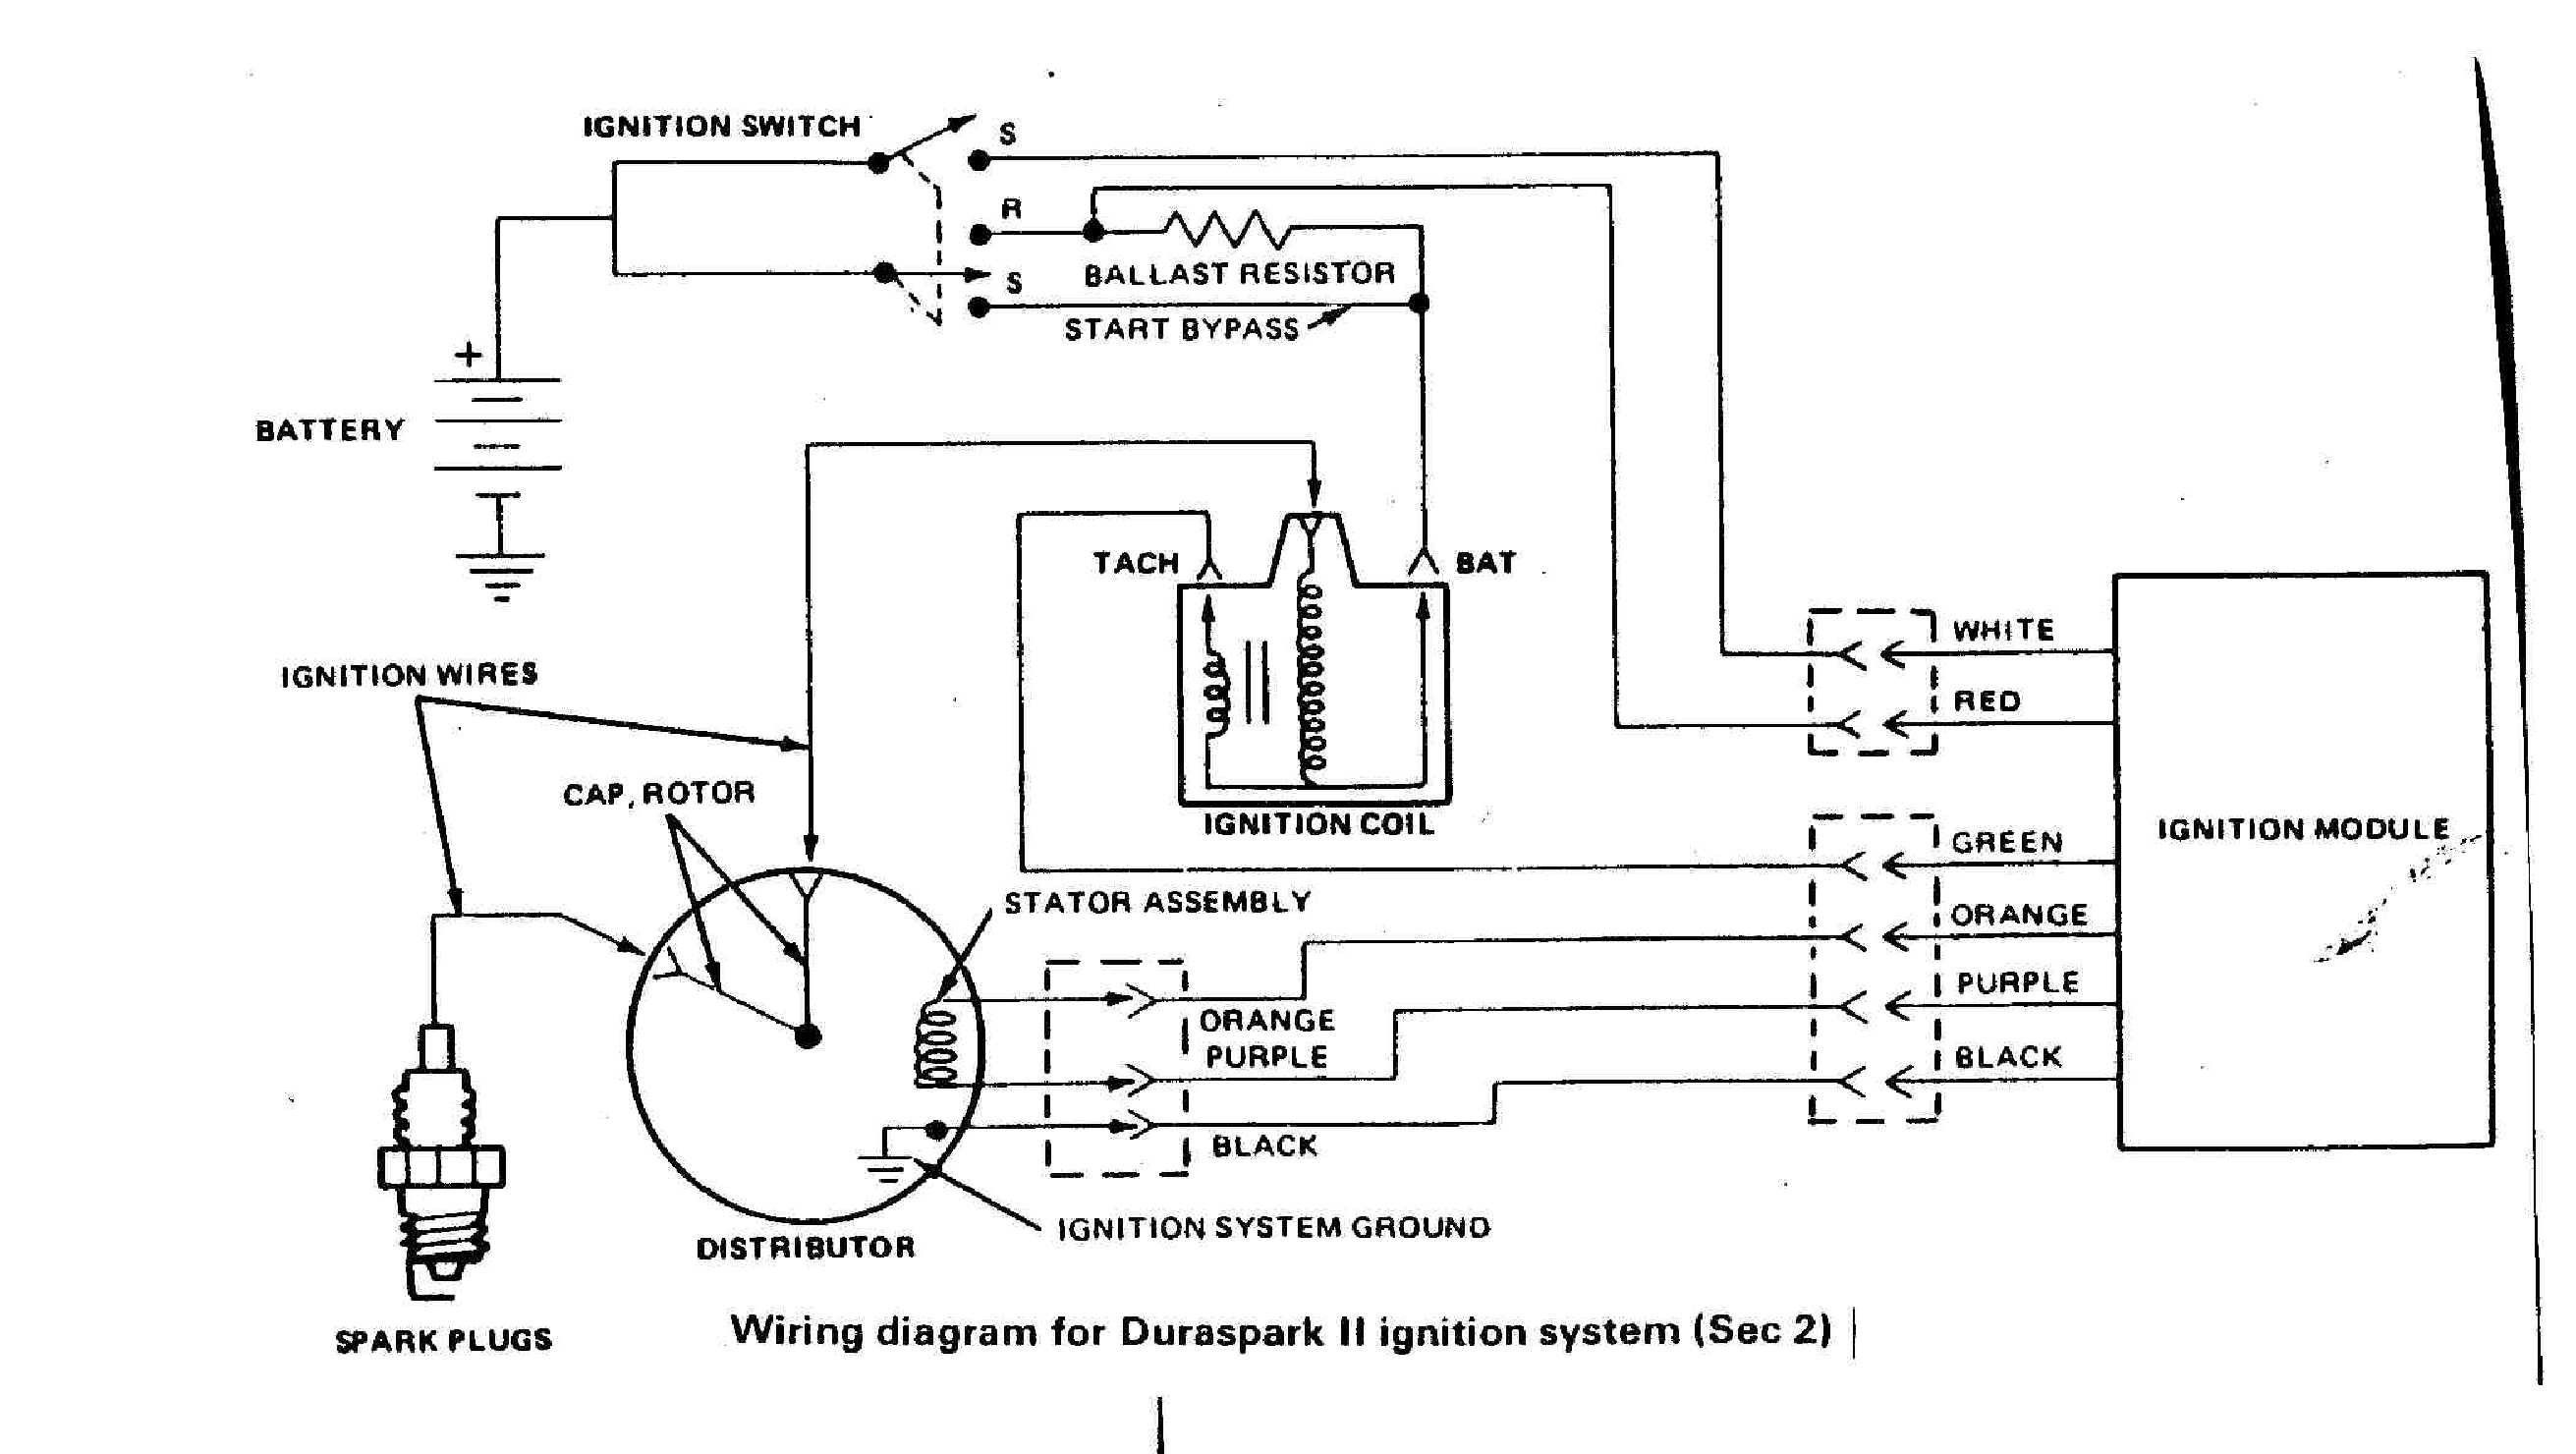 Unique Simple Switch Wiring Diagram Wiringdiagram Diagramming Diagramm Visuals Visualisation Graphical Check More At Https Diagram Ignition Coil Wire